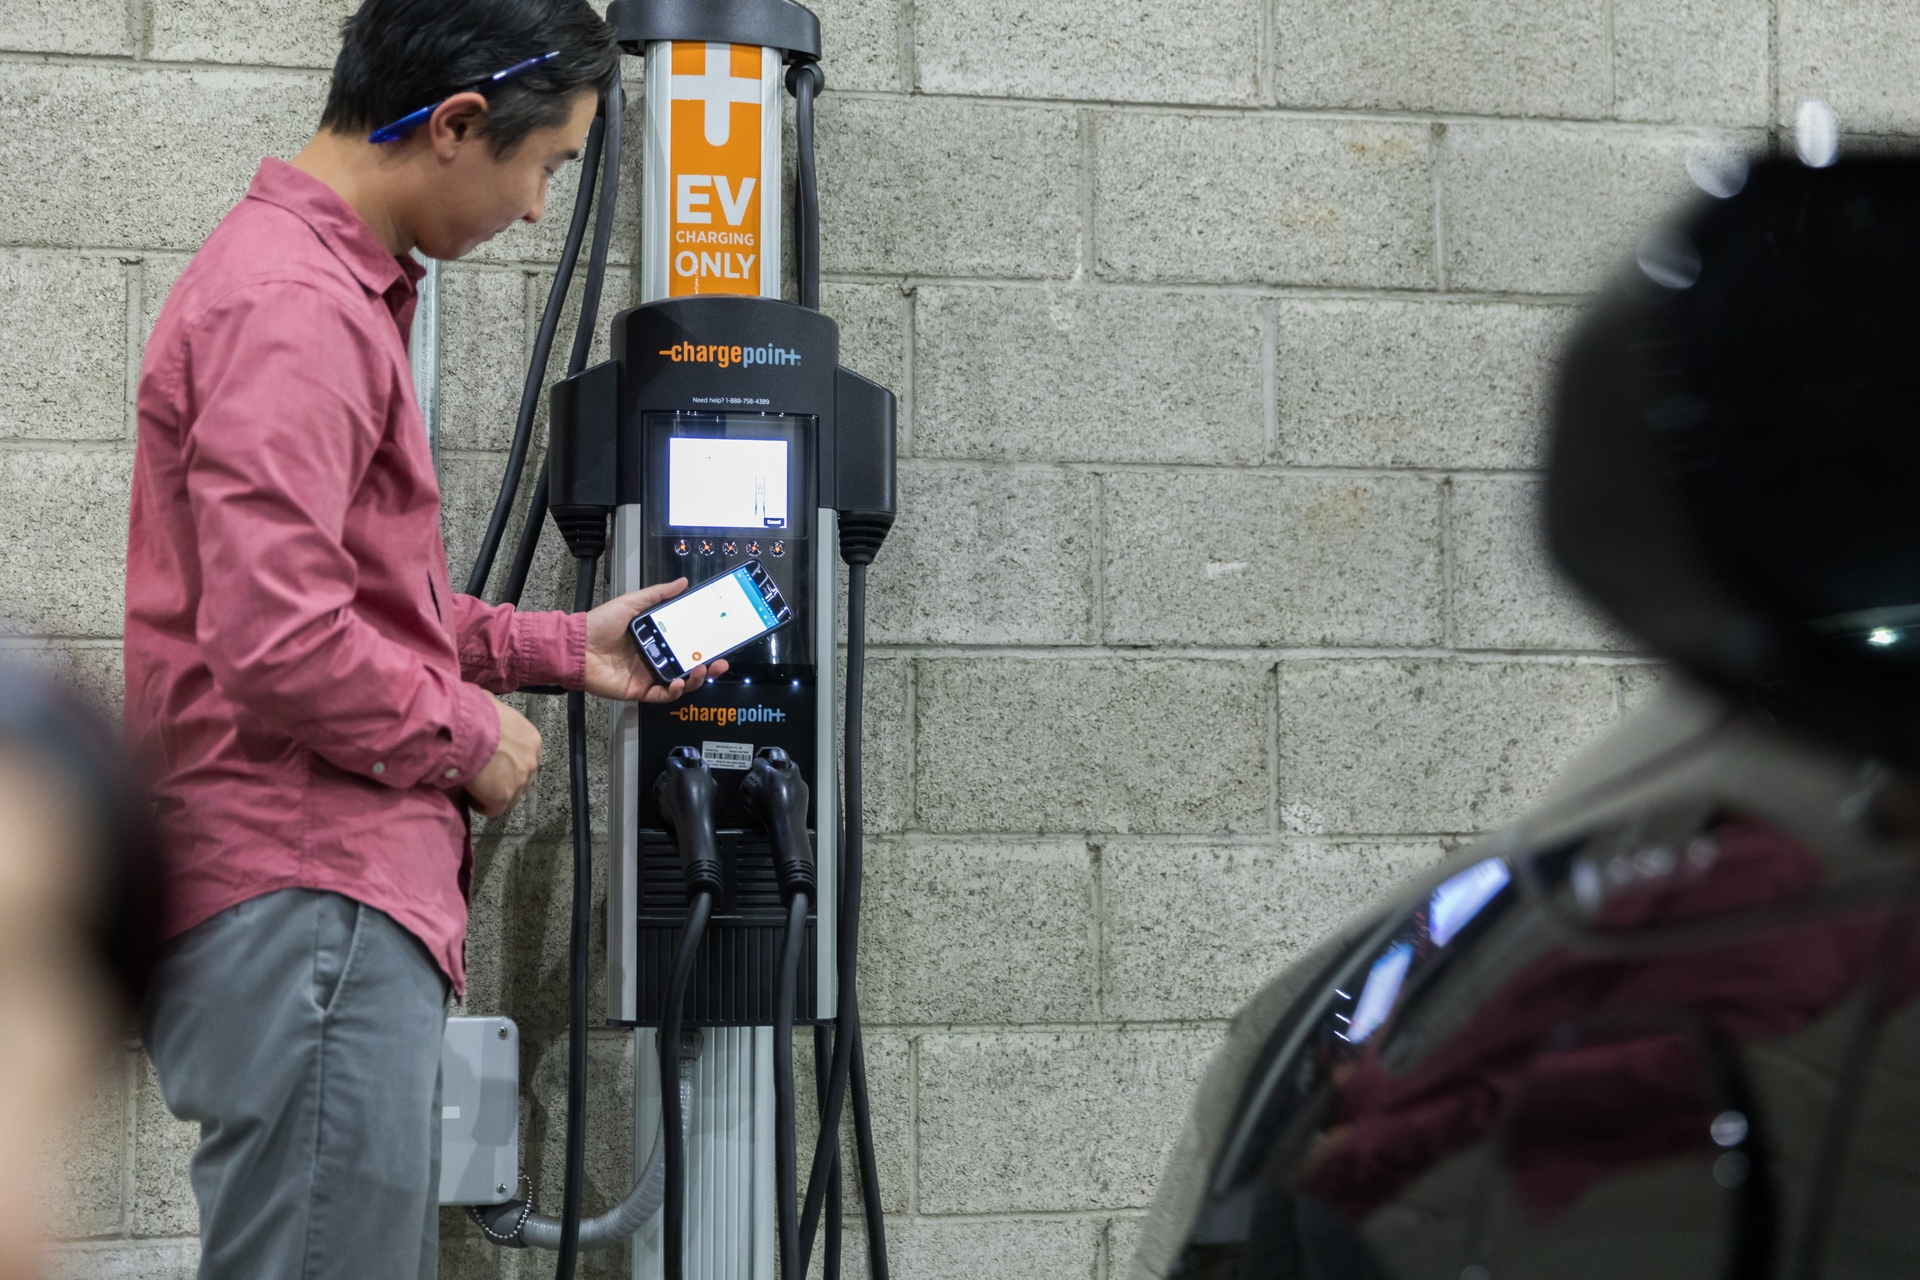 SCE's Charge Ready program will have an added emphasis on putting charging stations in multifamily dwellings, such as this Charge Ready pilot project at a condominium complex in the South Bay area.